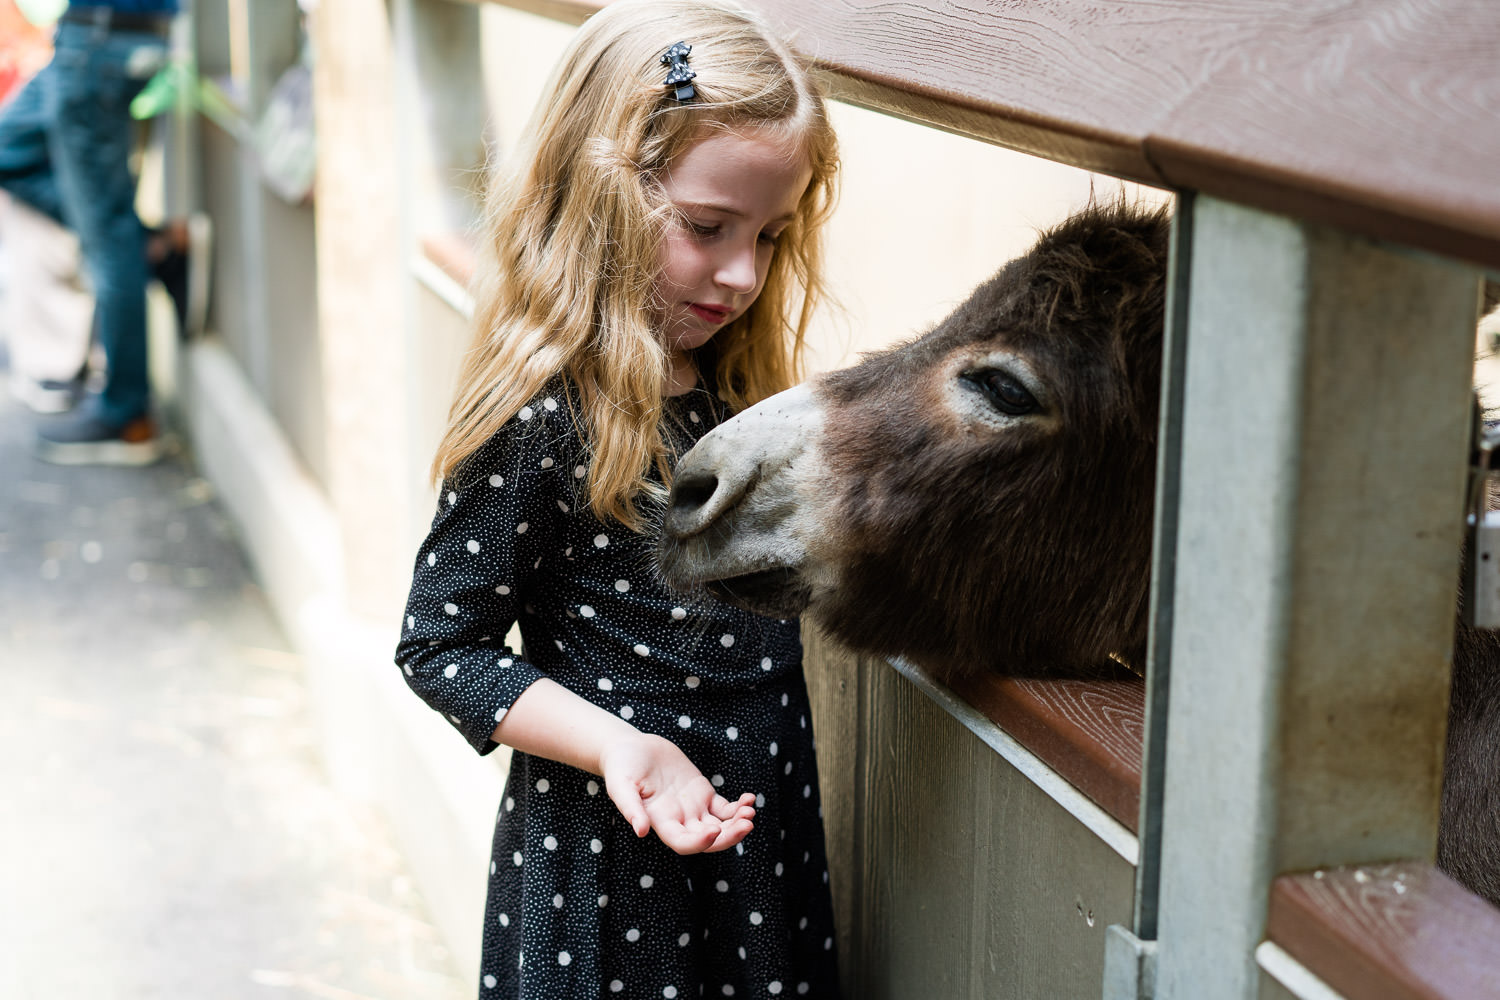 A little girl pets a donkey at the Bronx Zoo.